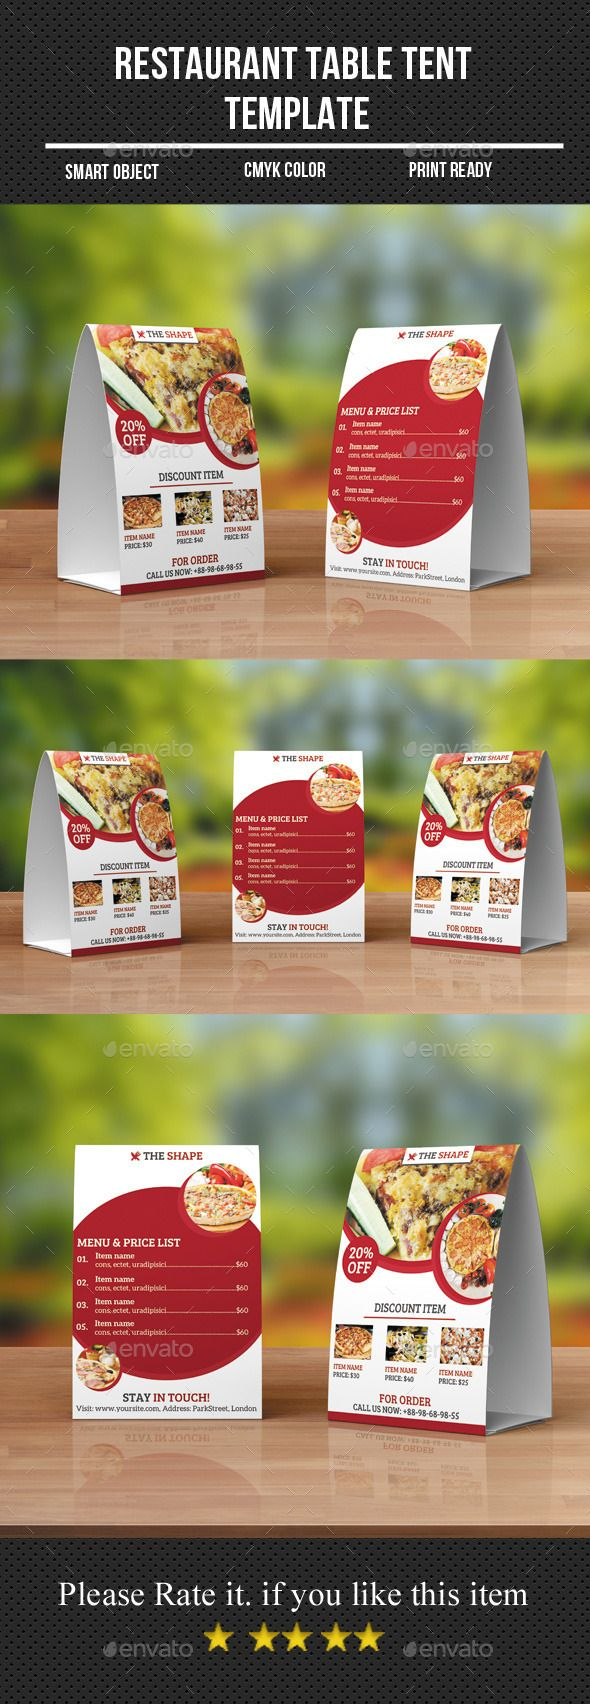 pin by best graphic design on best food menu templates menu design